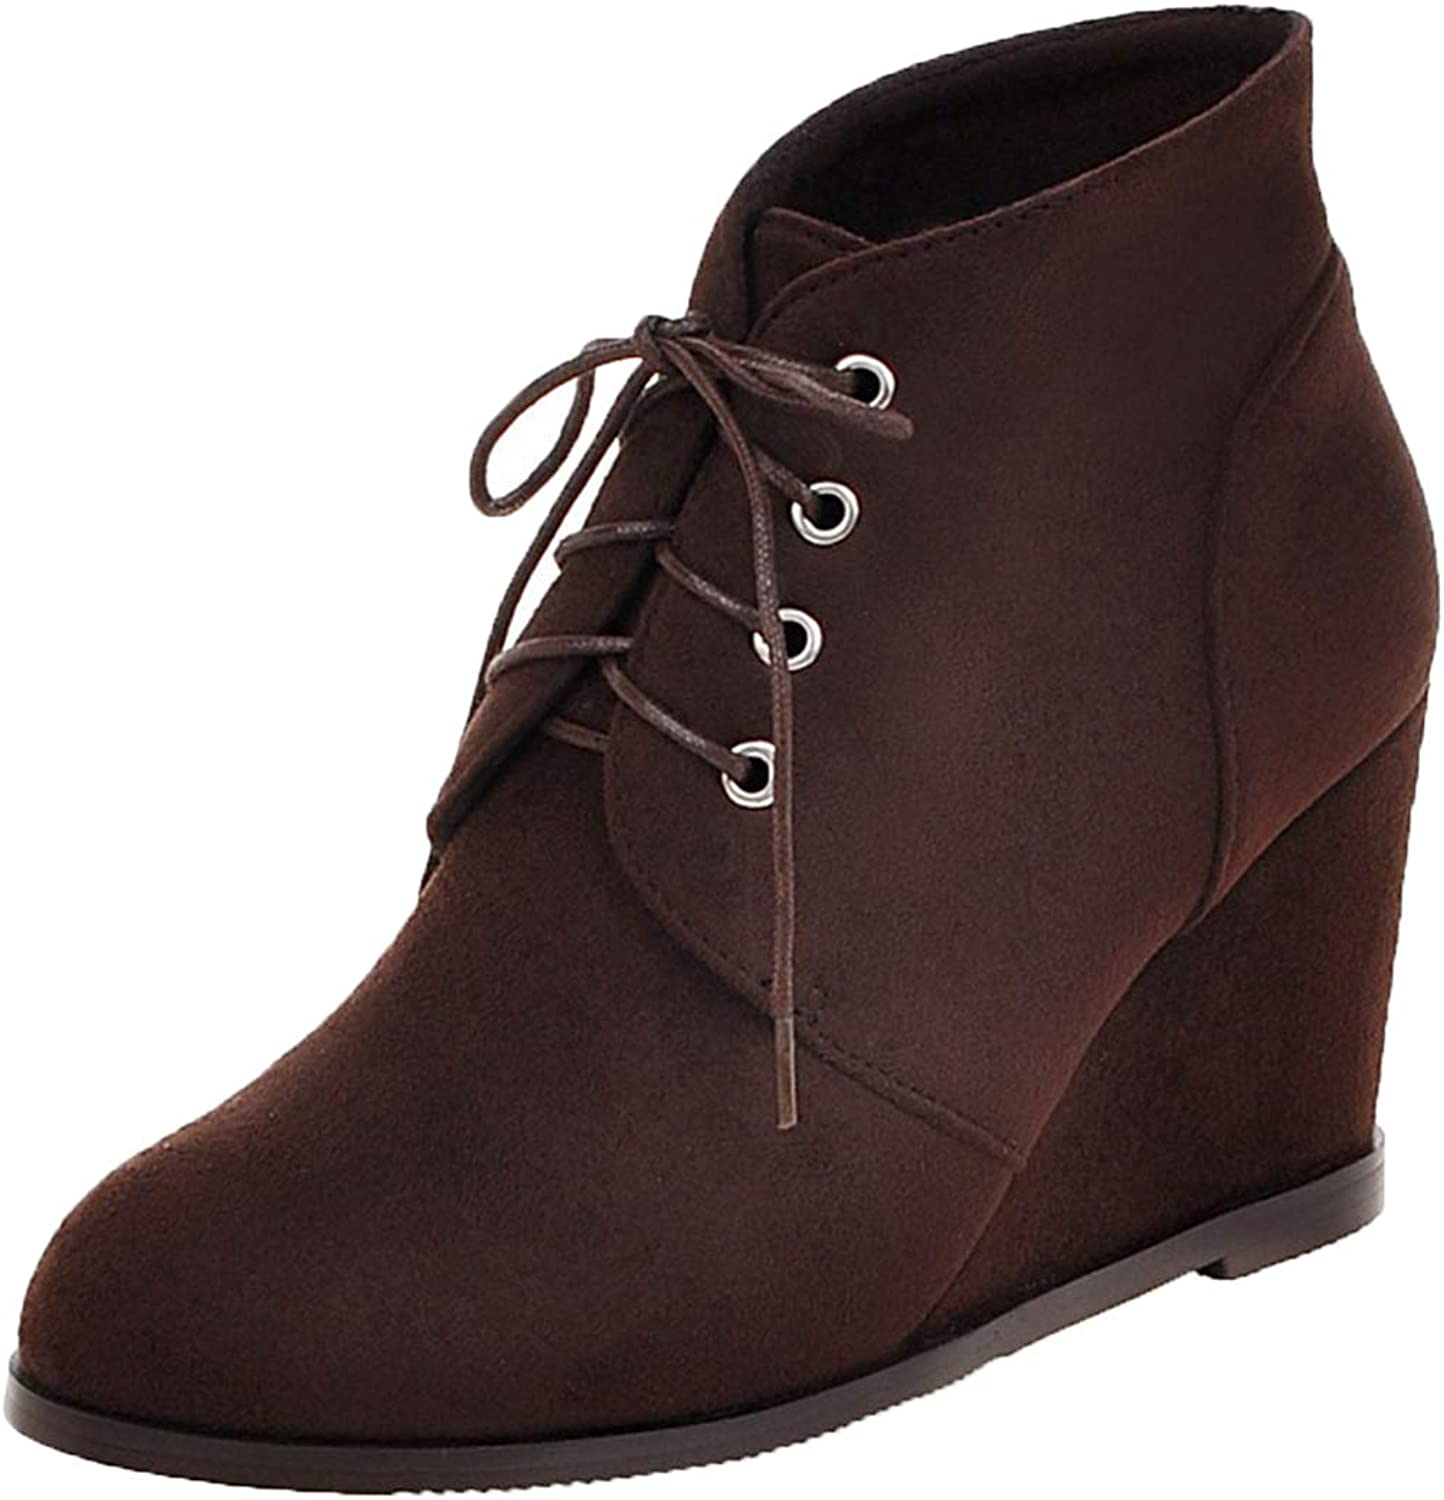 Vitalo Womens High Wedge Heel Lace Up Ankle Boots Ladies Autumn Winter Booties